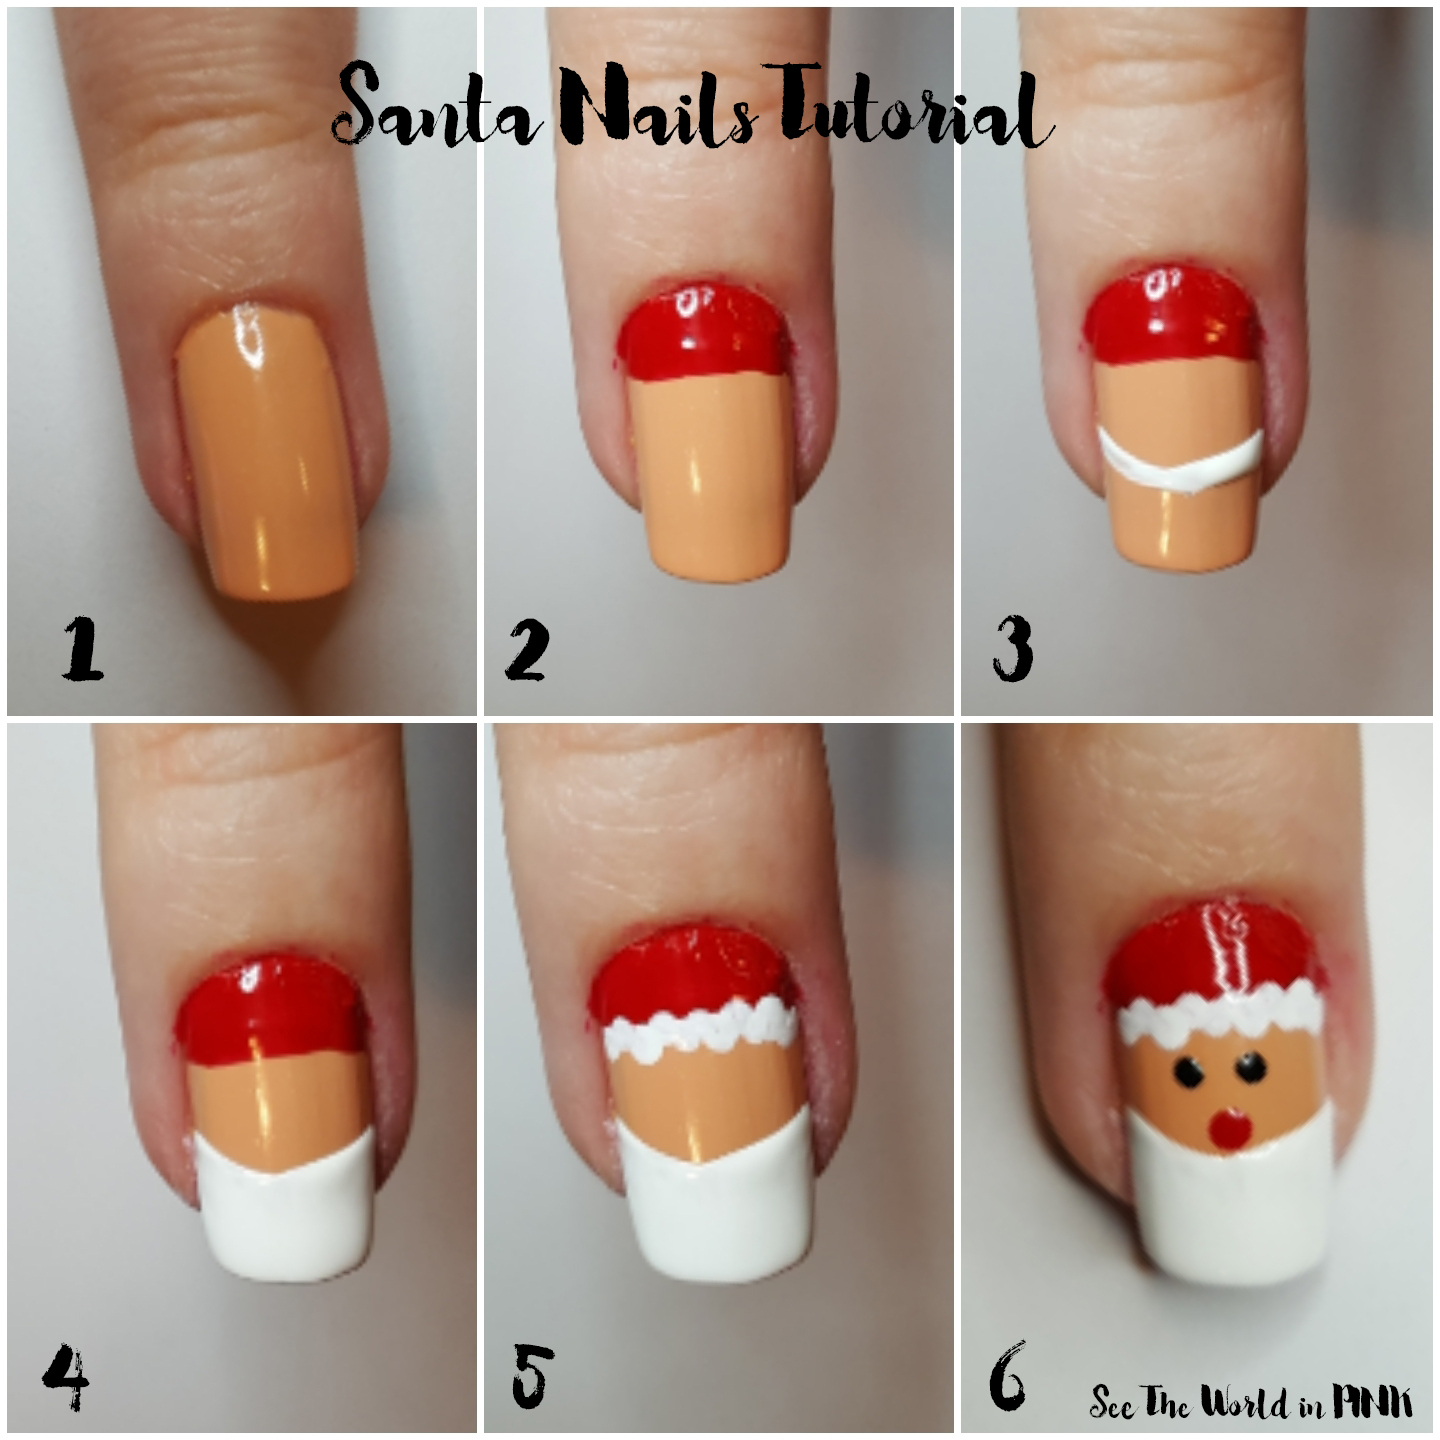 Manicure Tuesday - Santa Nail Art Tutorial